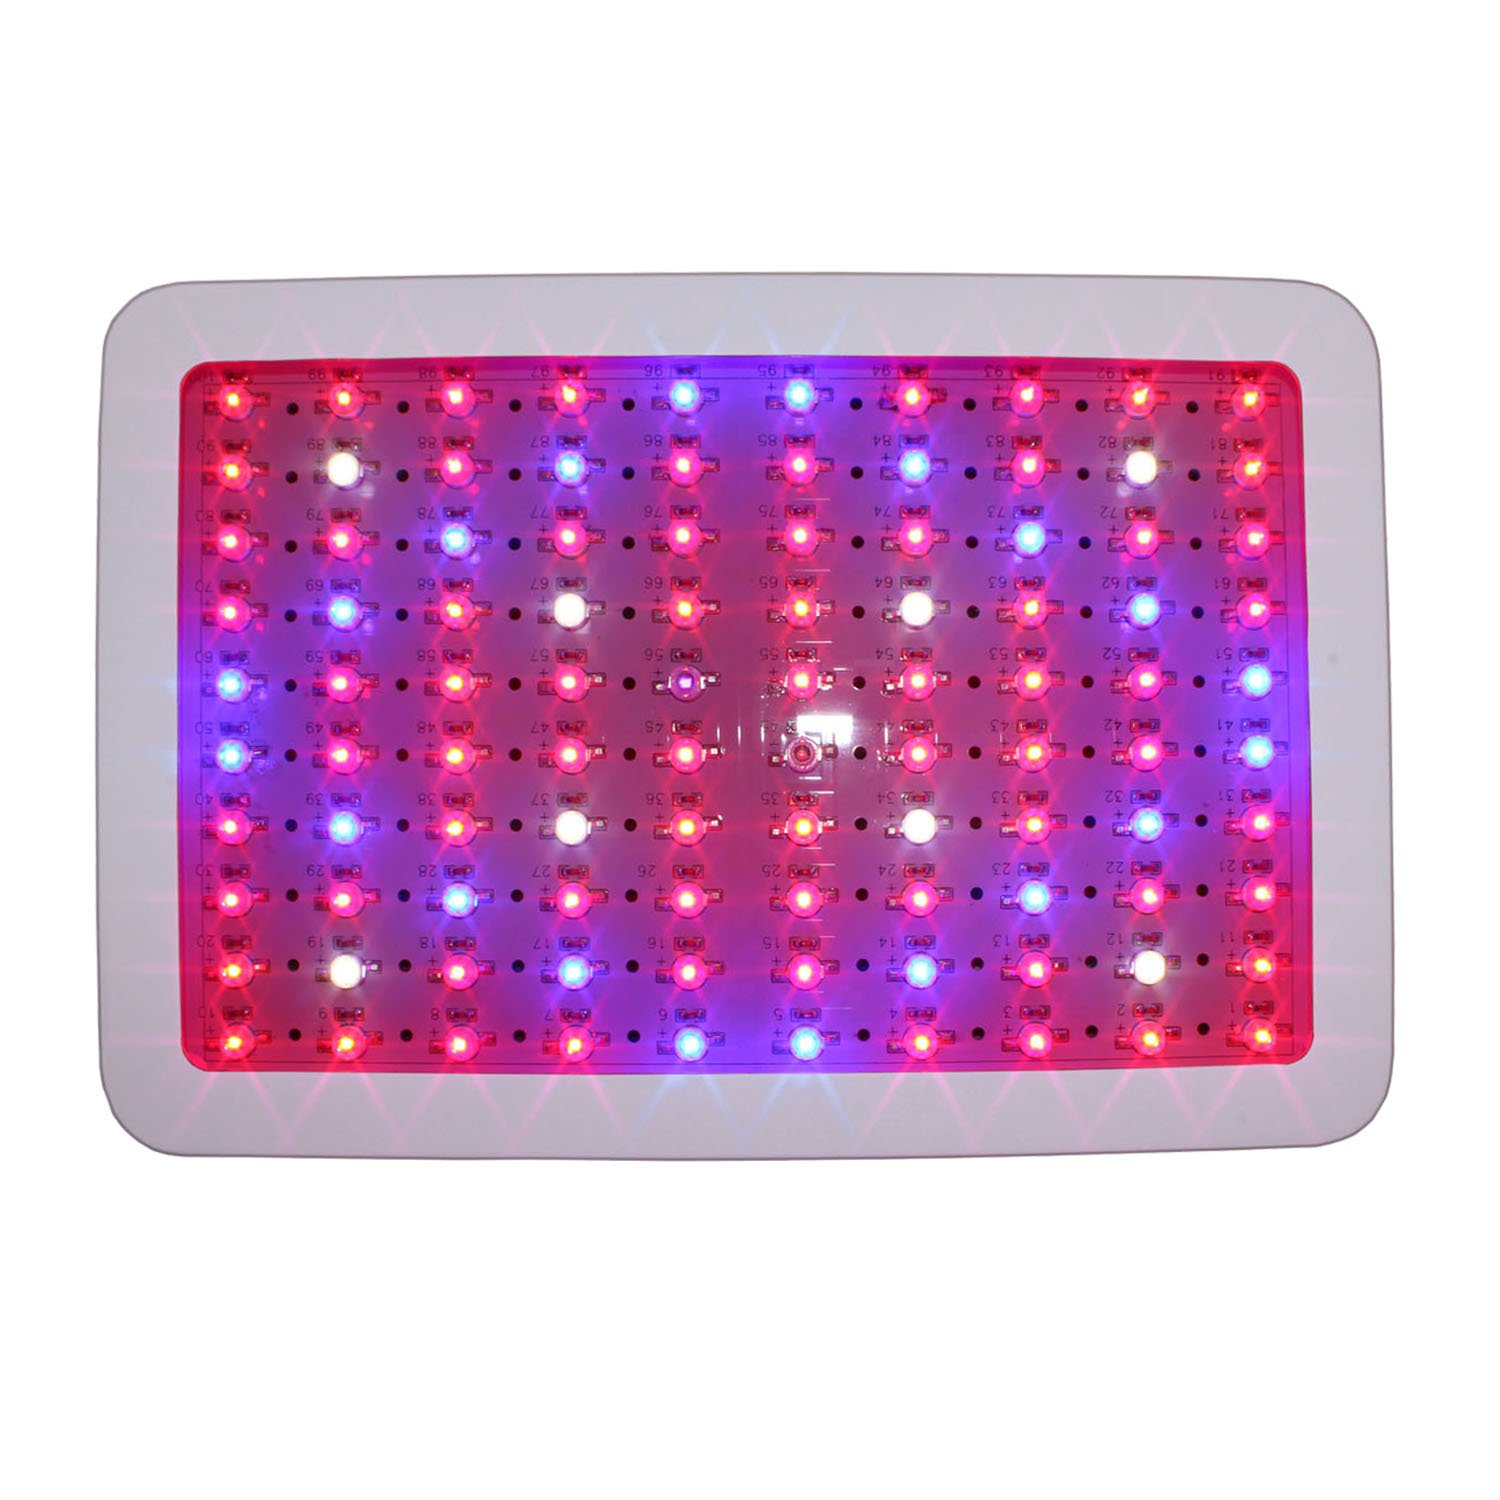 RYSA LIGHT LED Indoor Grow Light 1000W Full Spectrum Double Chips Growing Lamps with UV IR for Garden Plants Veg Flower Hydroponic Greenhouse by RYSA LIGHT (Image #3)